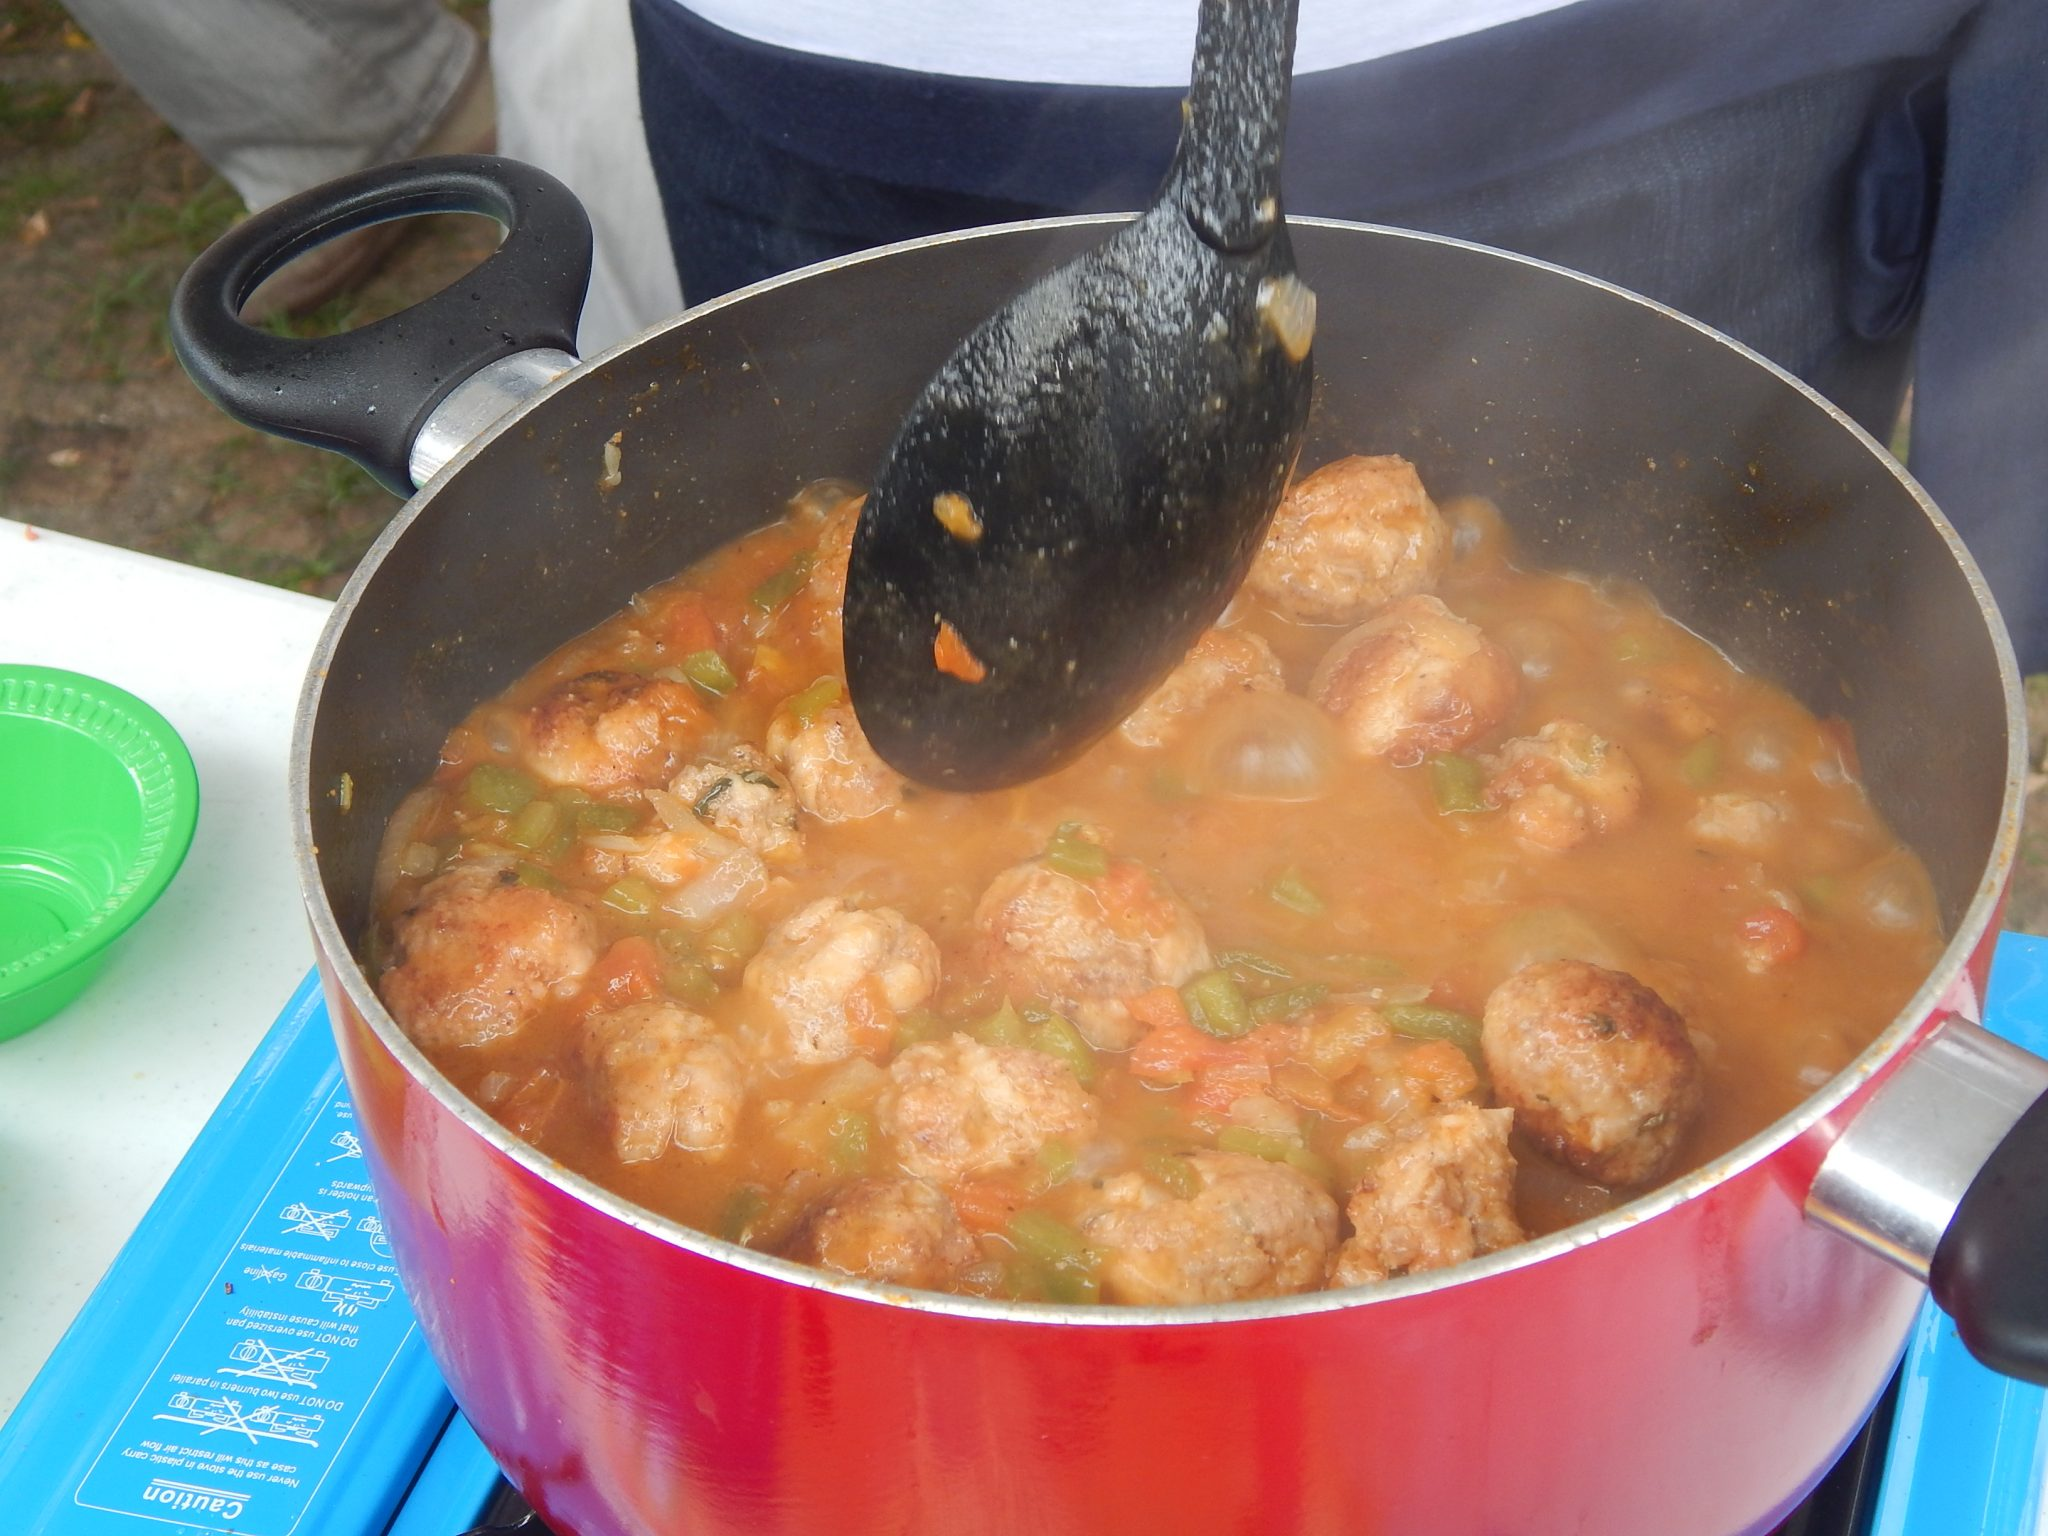 Meatballs in vegetable sauce